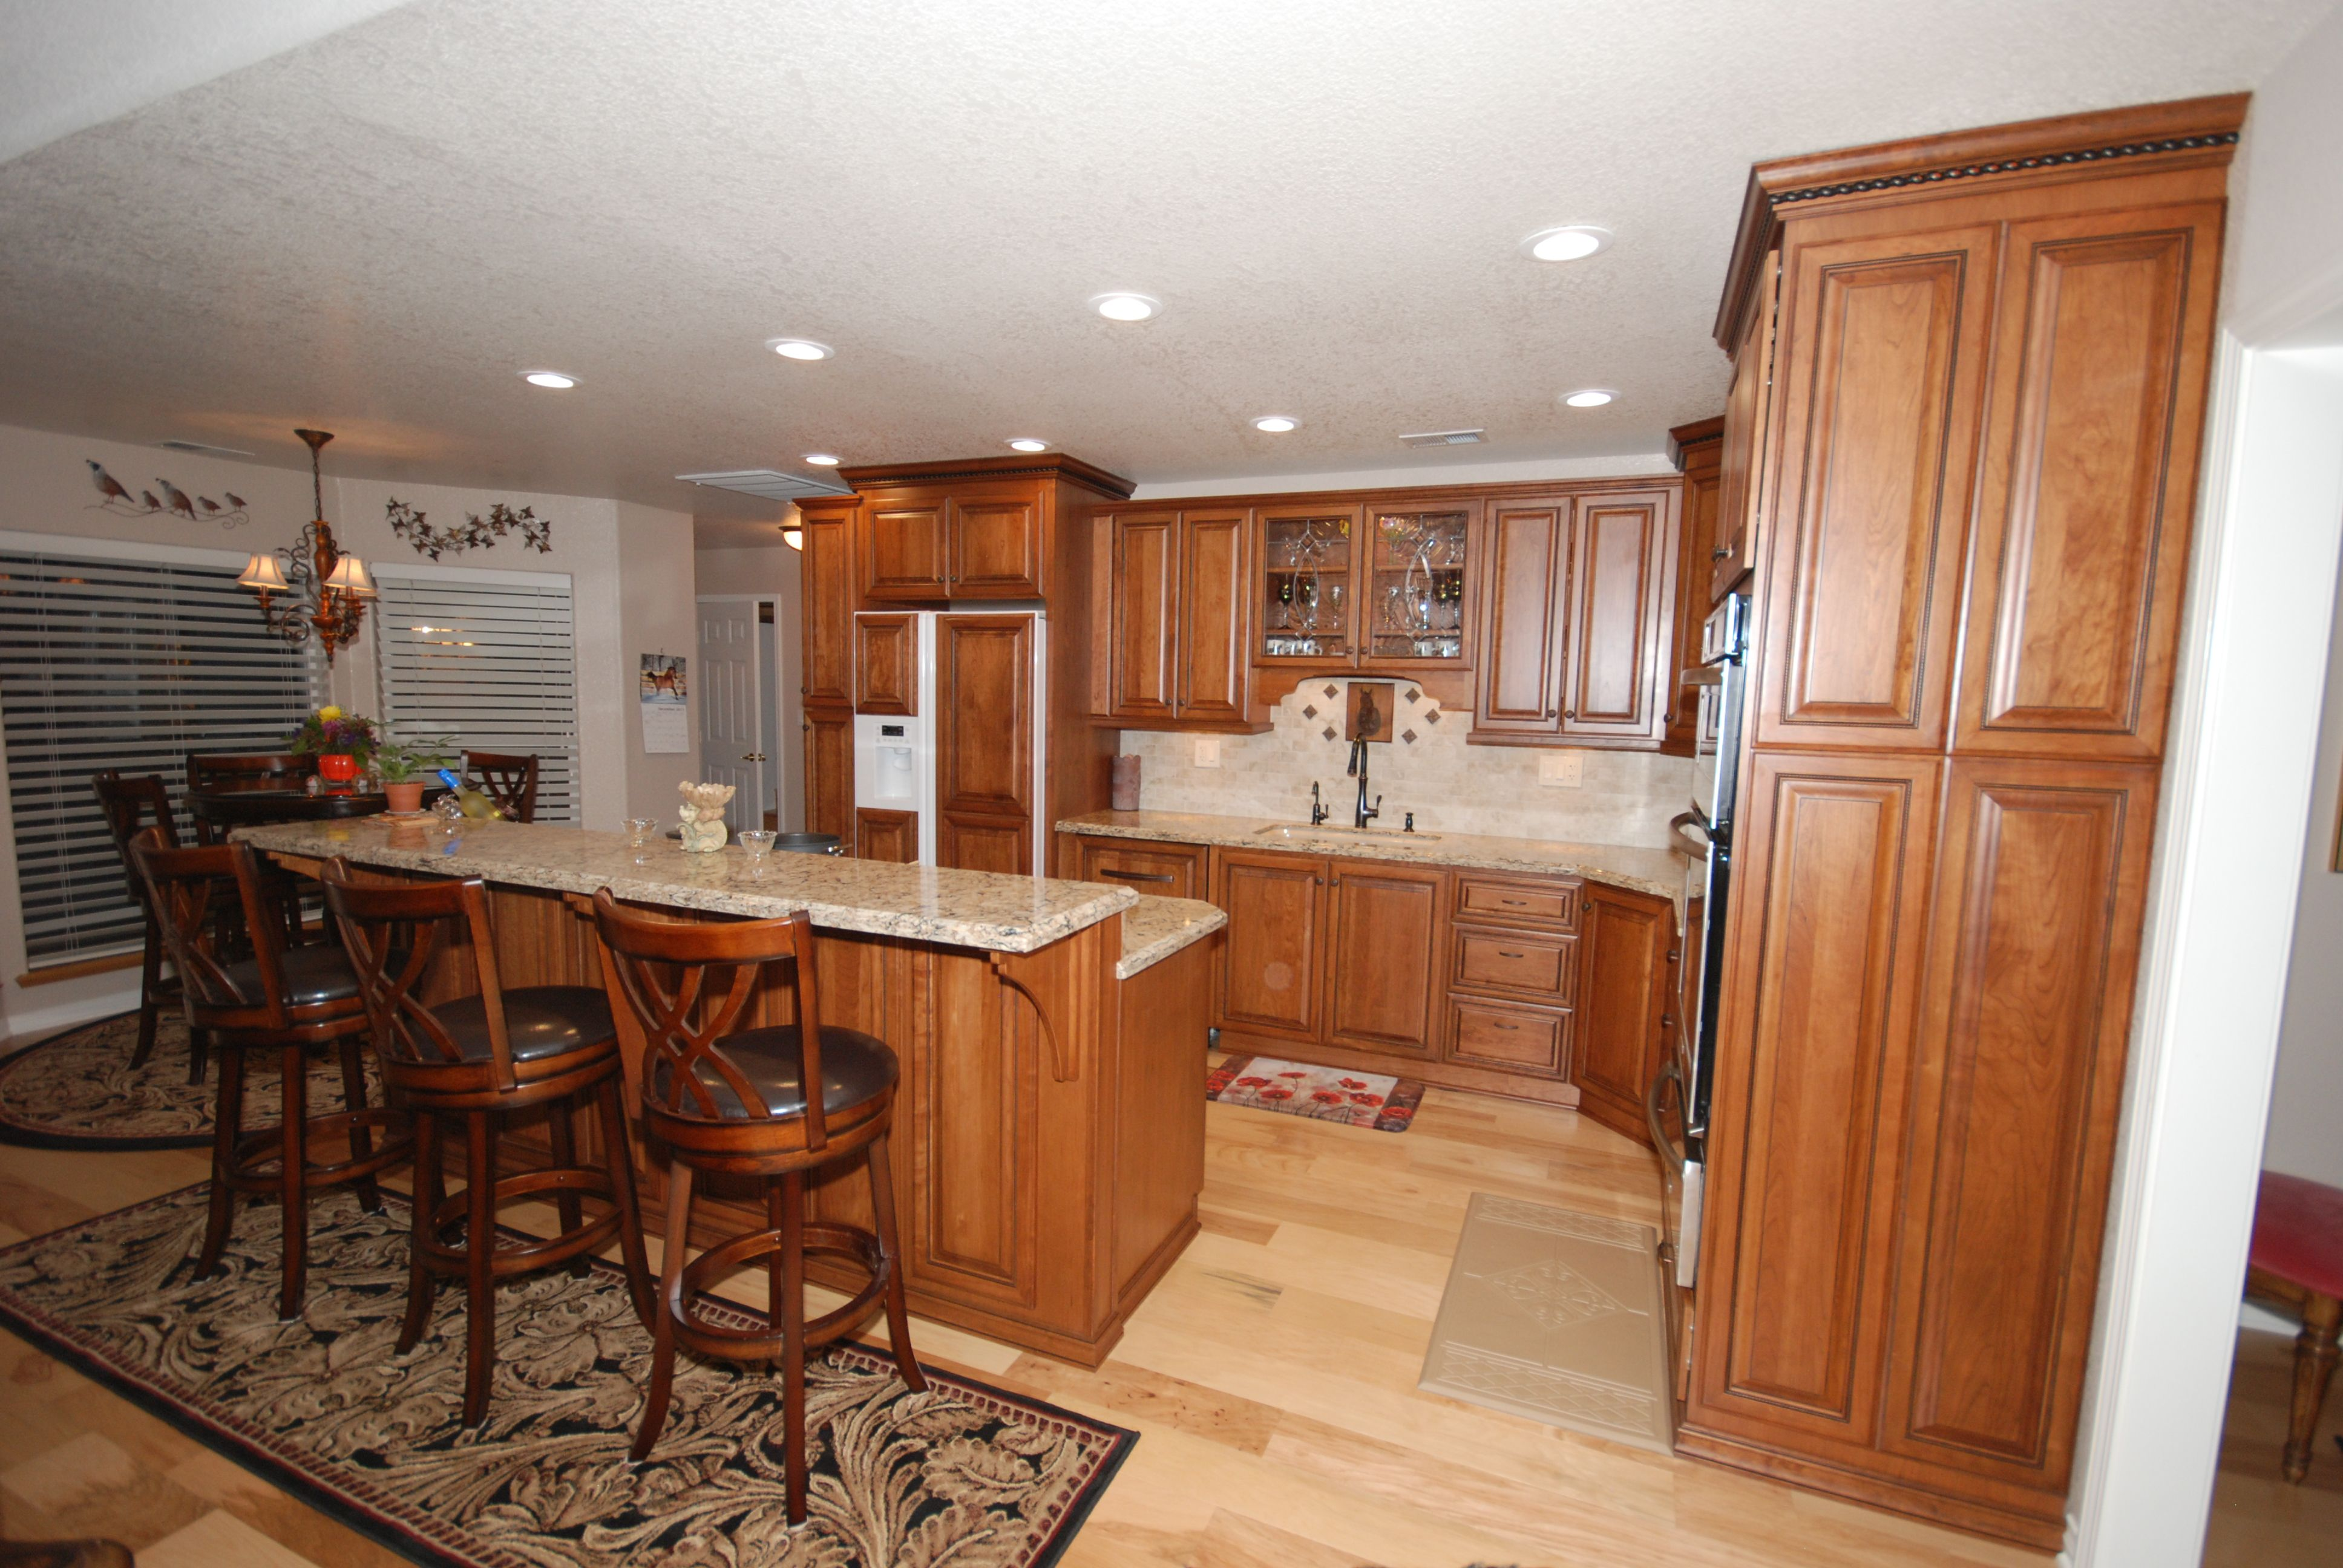 StarMark cherry cabinets in butterscotch with chocolate ...